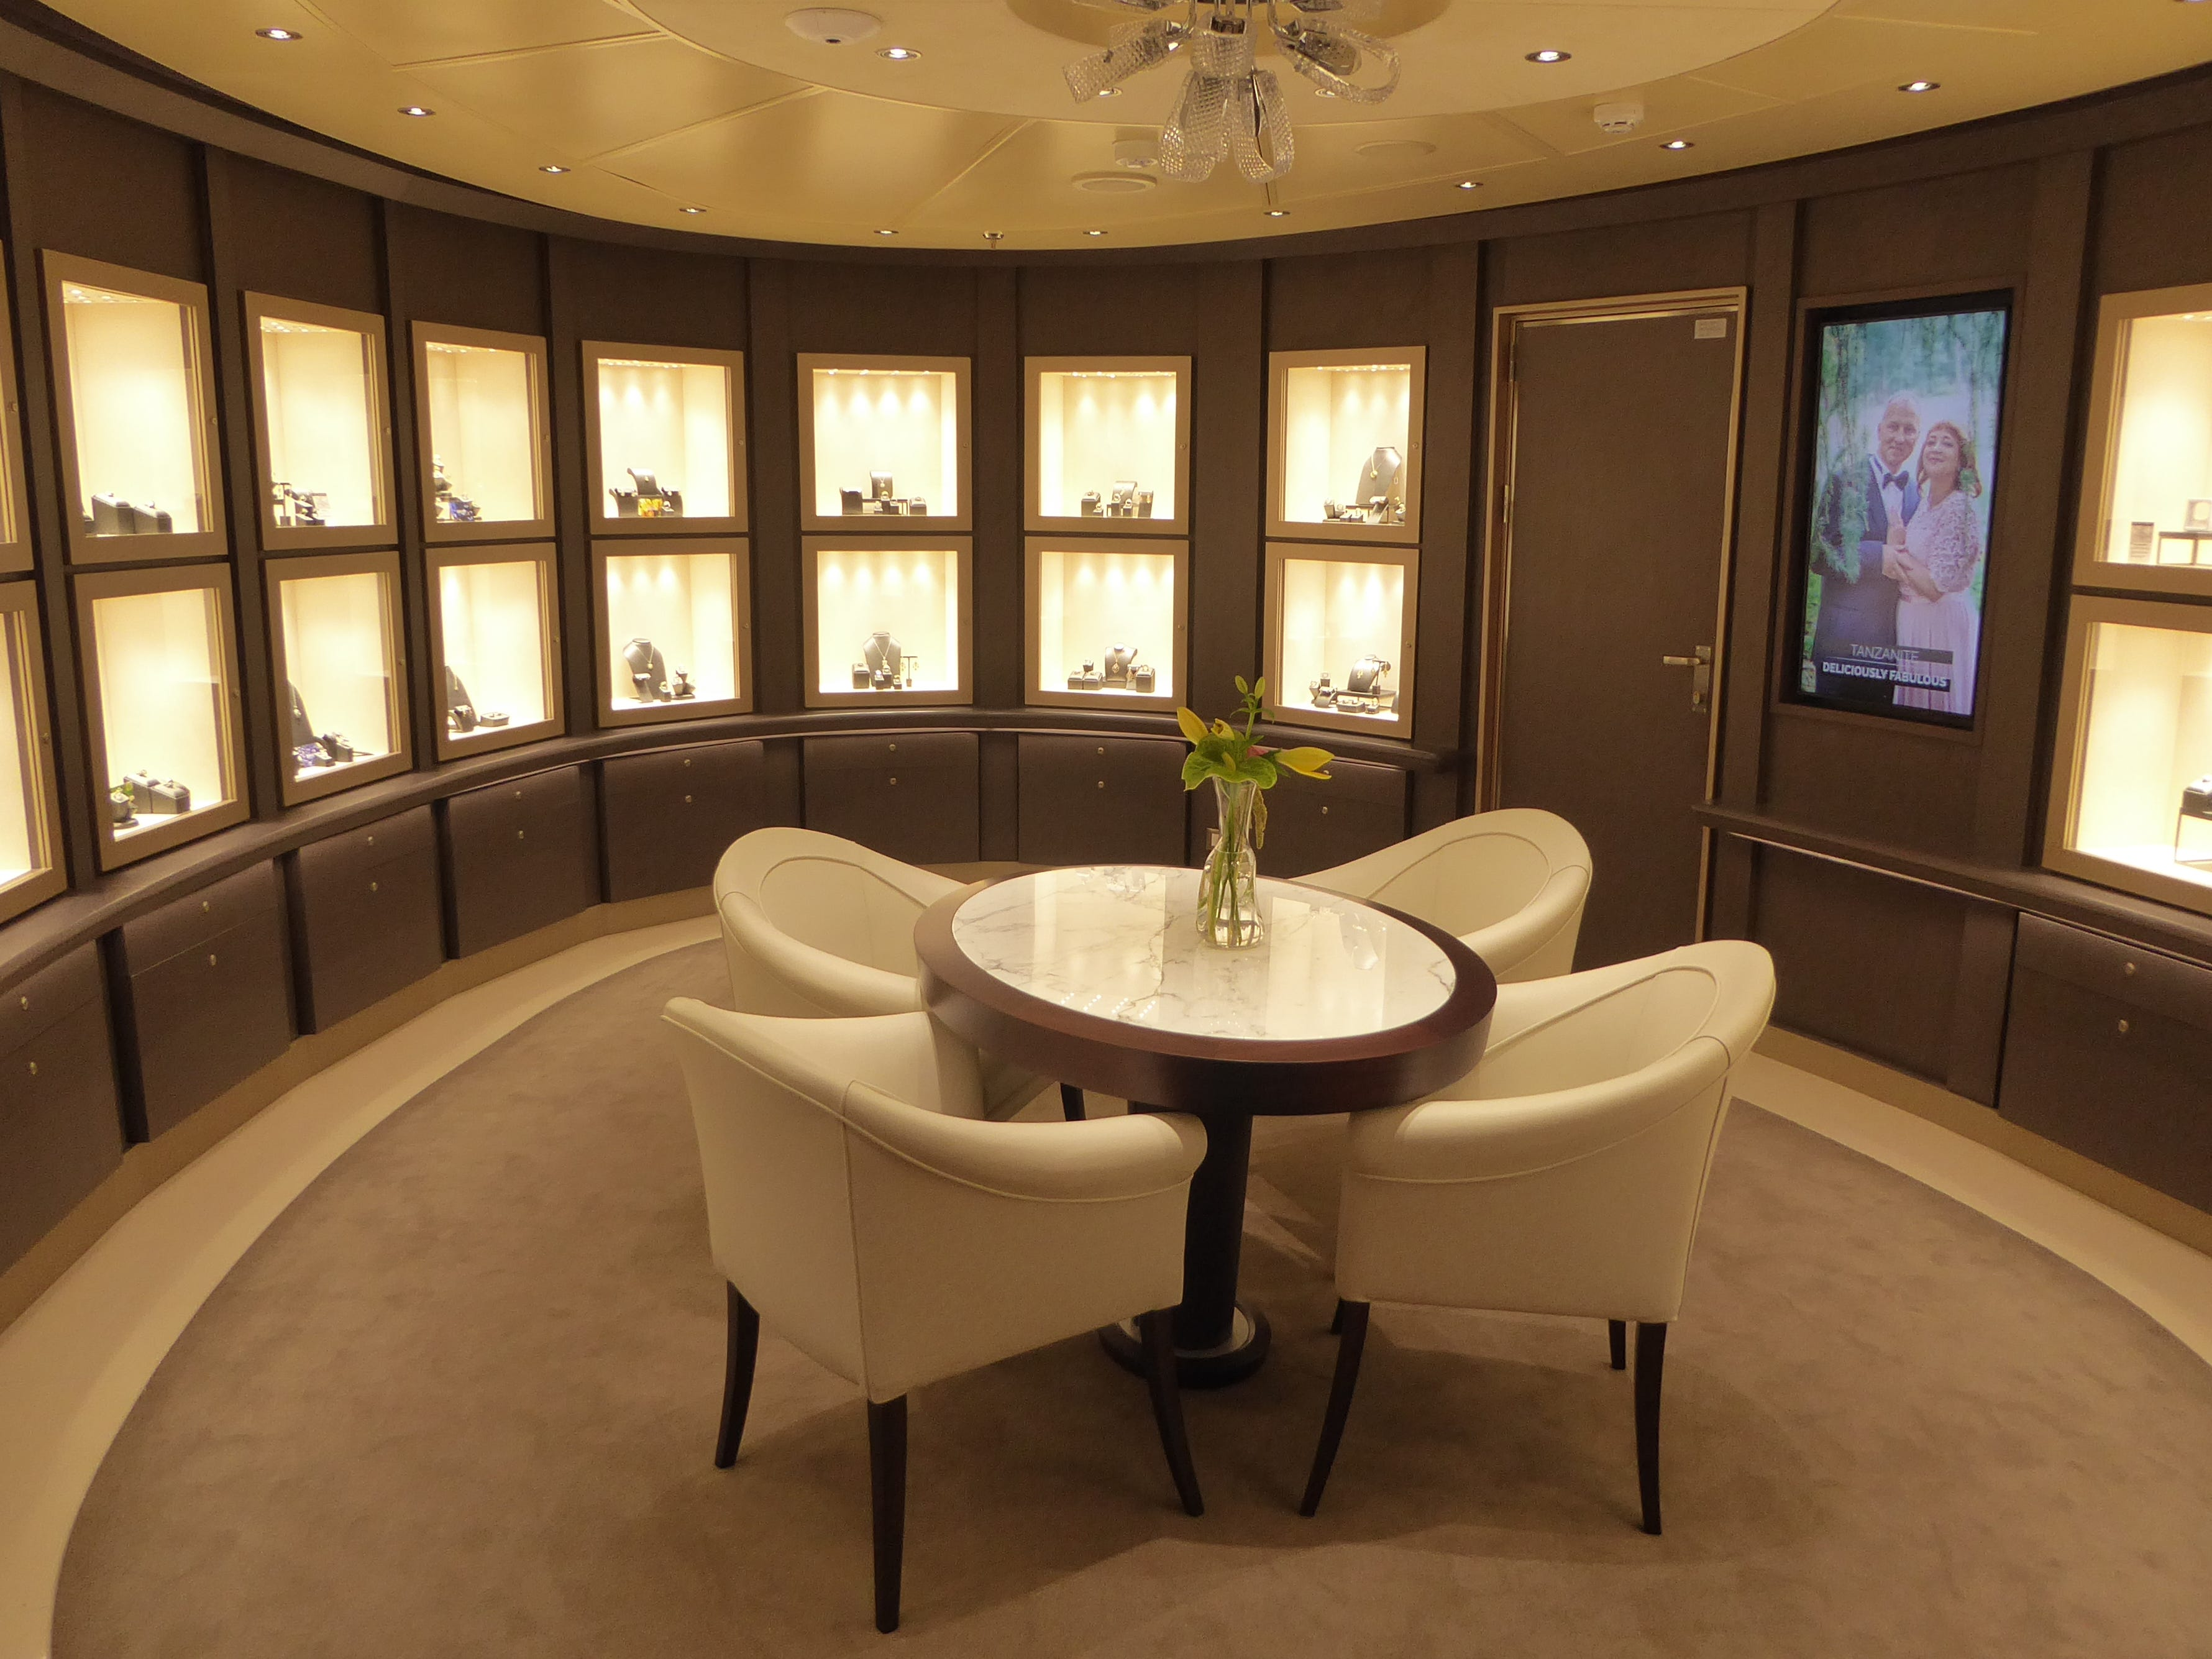 Merabella is the Nieuw Statendam's high-end jewelry shop located on the starboard side of Deck 2.